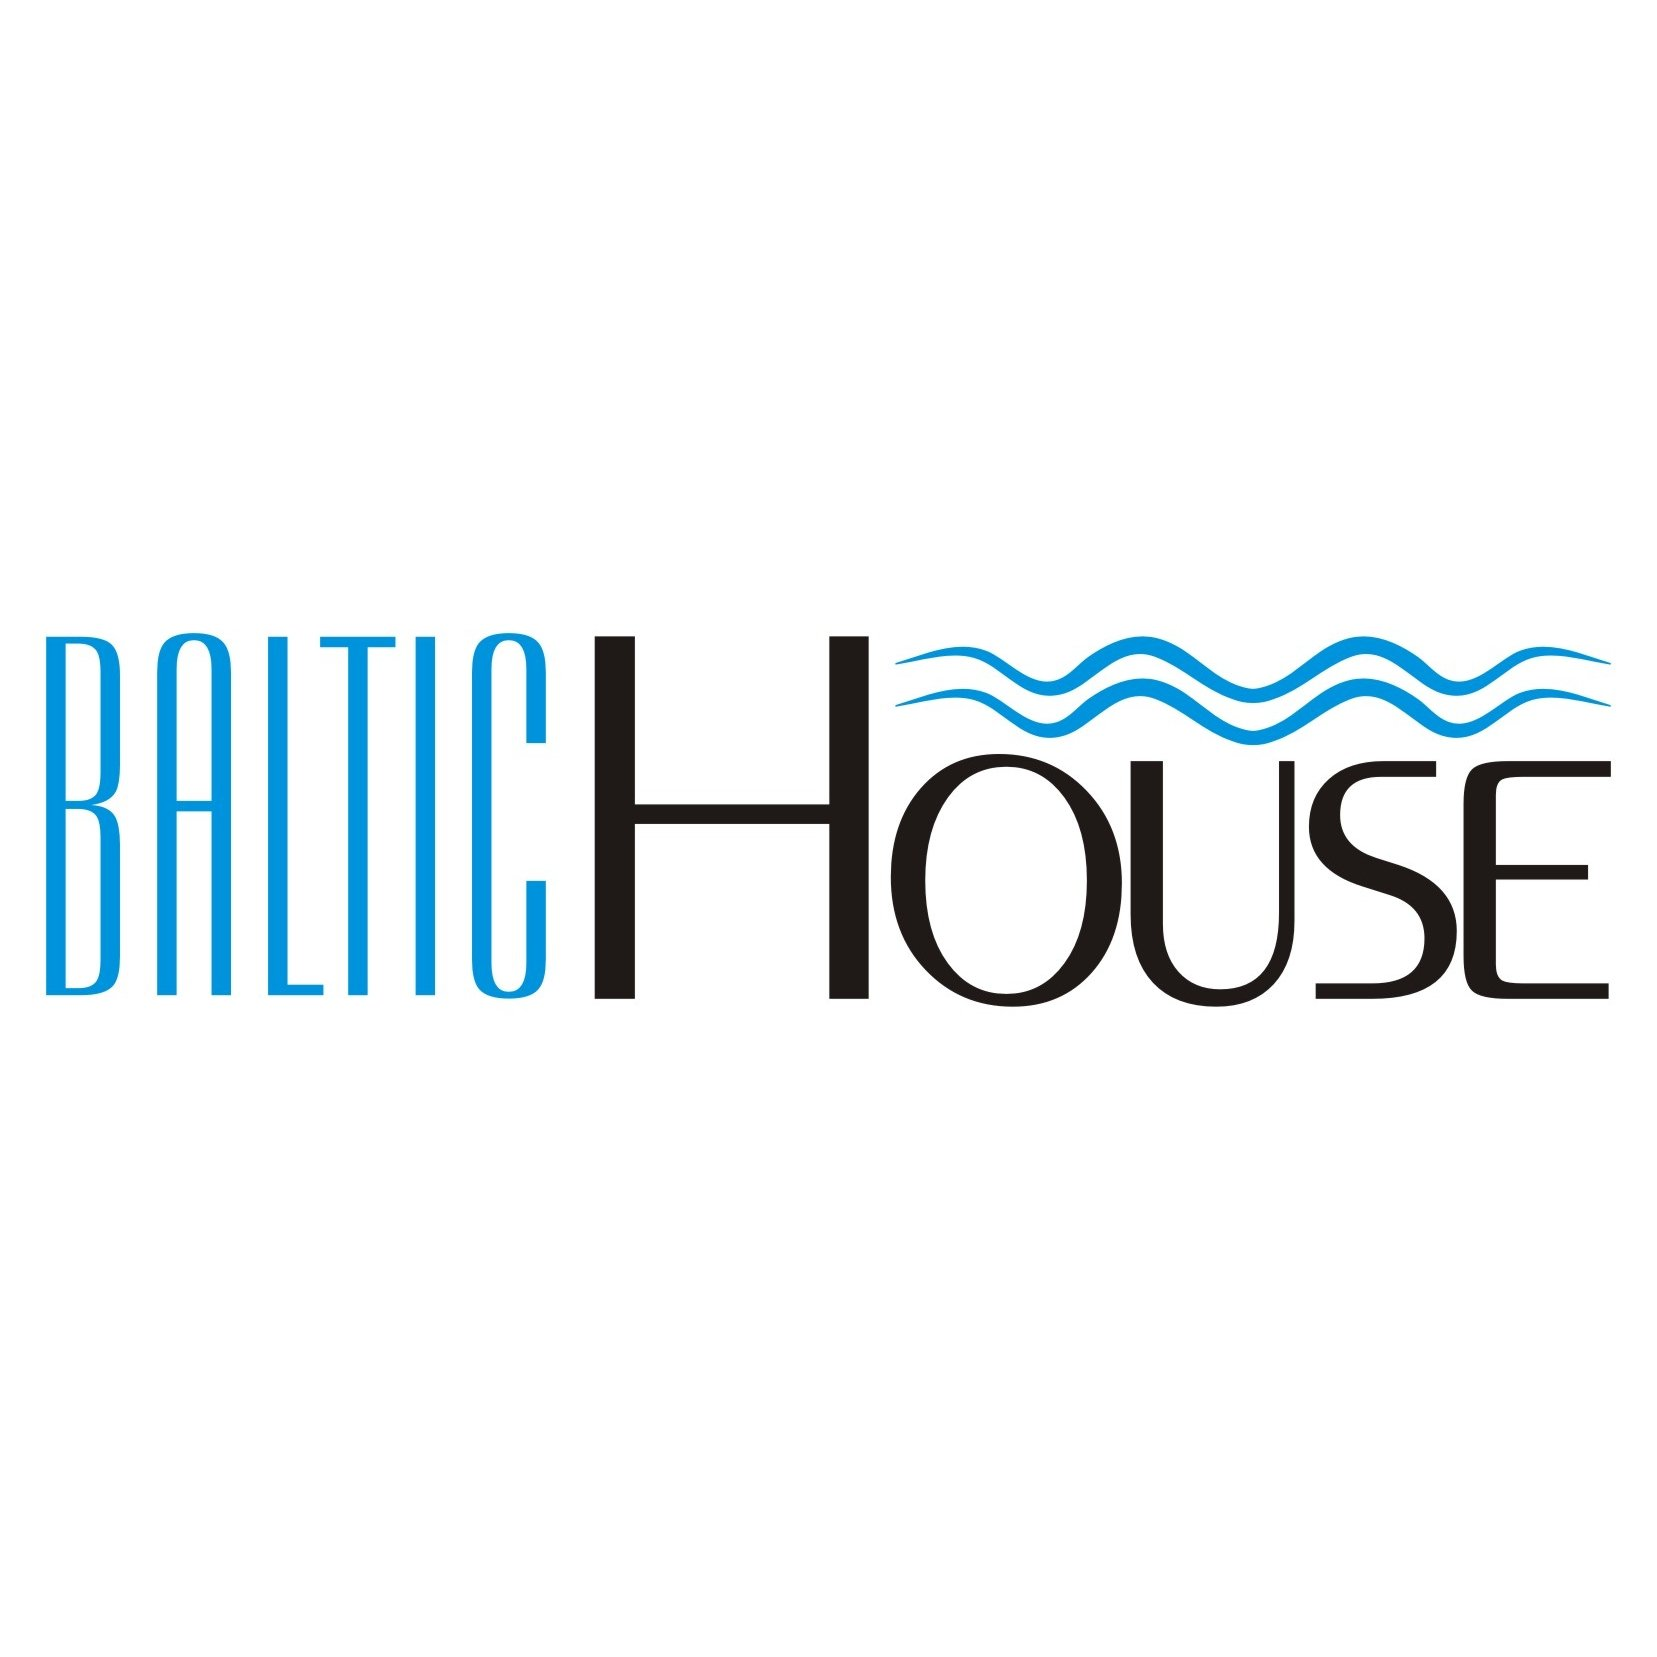 ba/baltic-house-logotipas-2-2-1.jpg